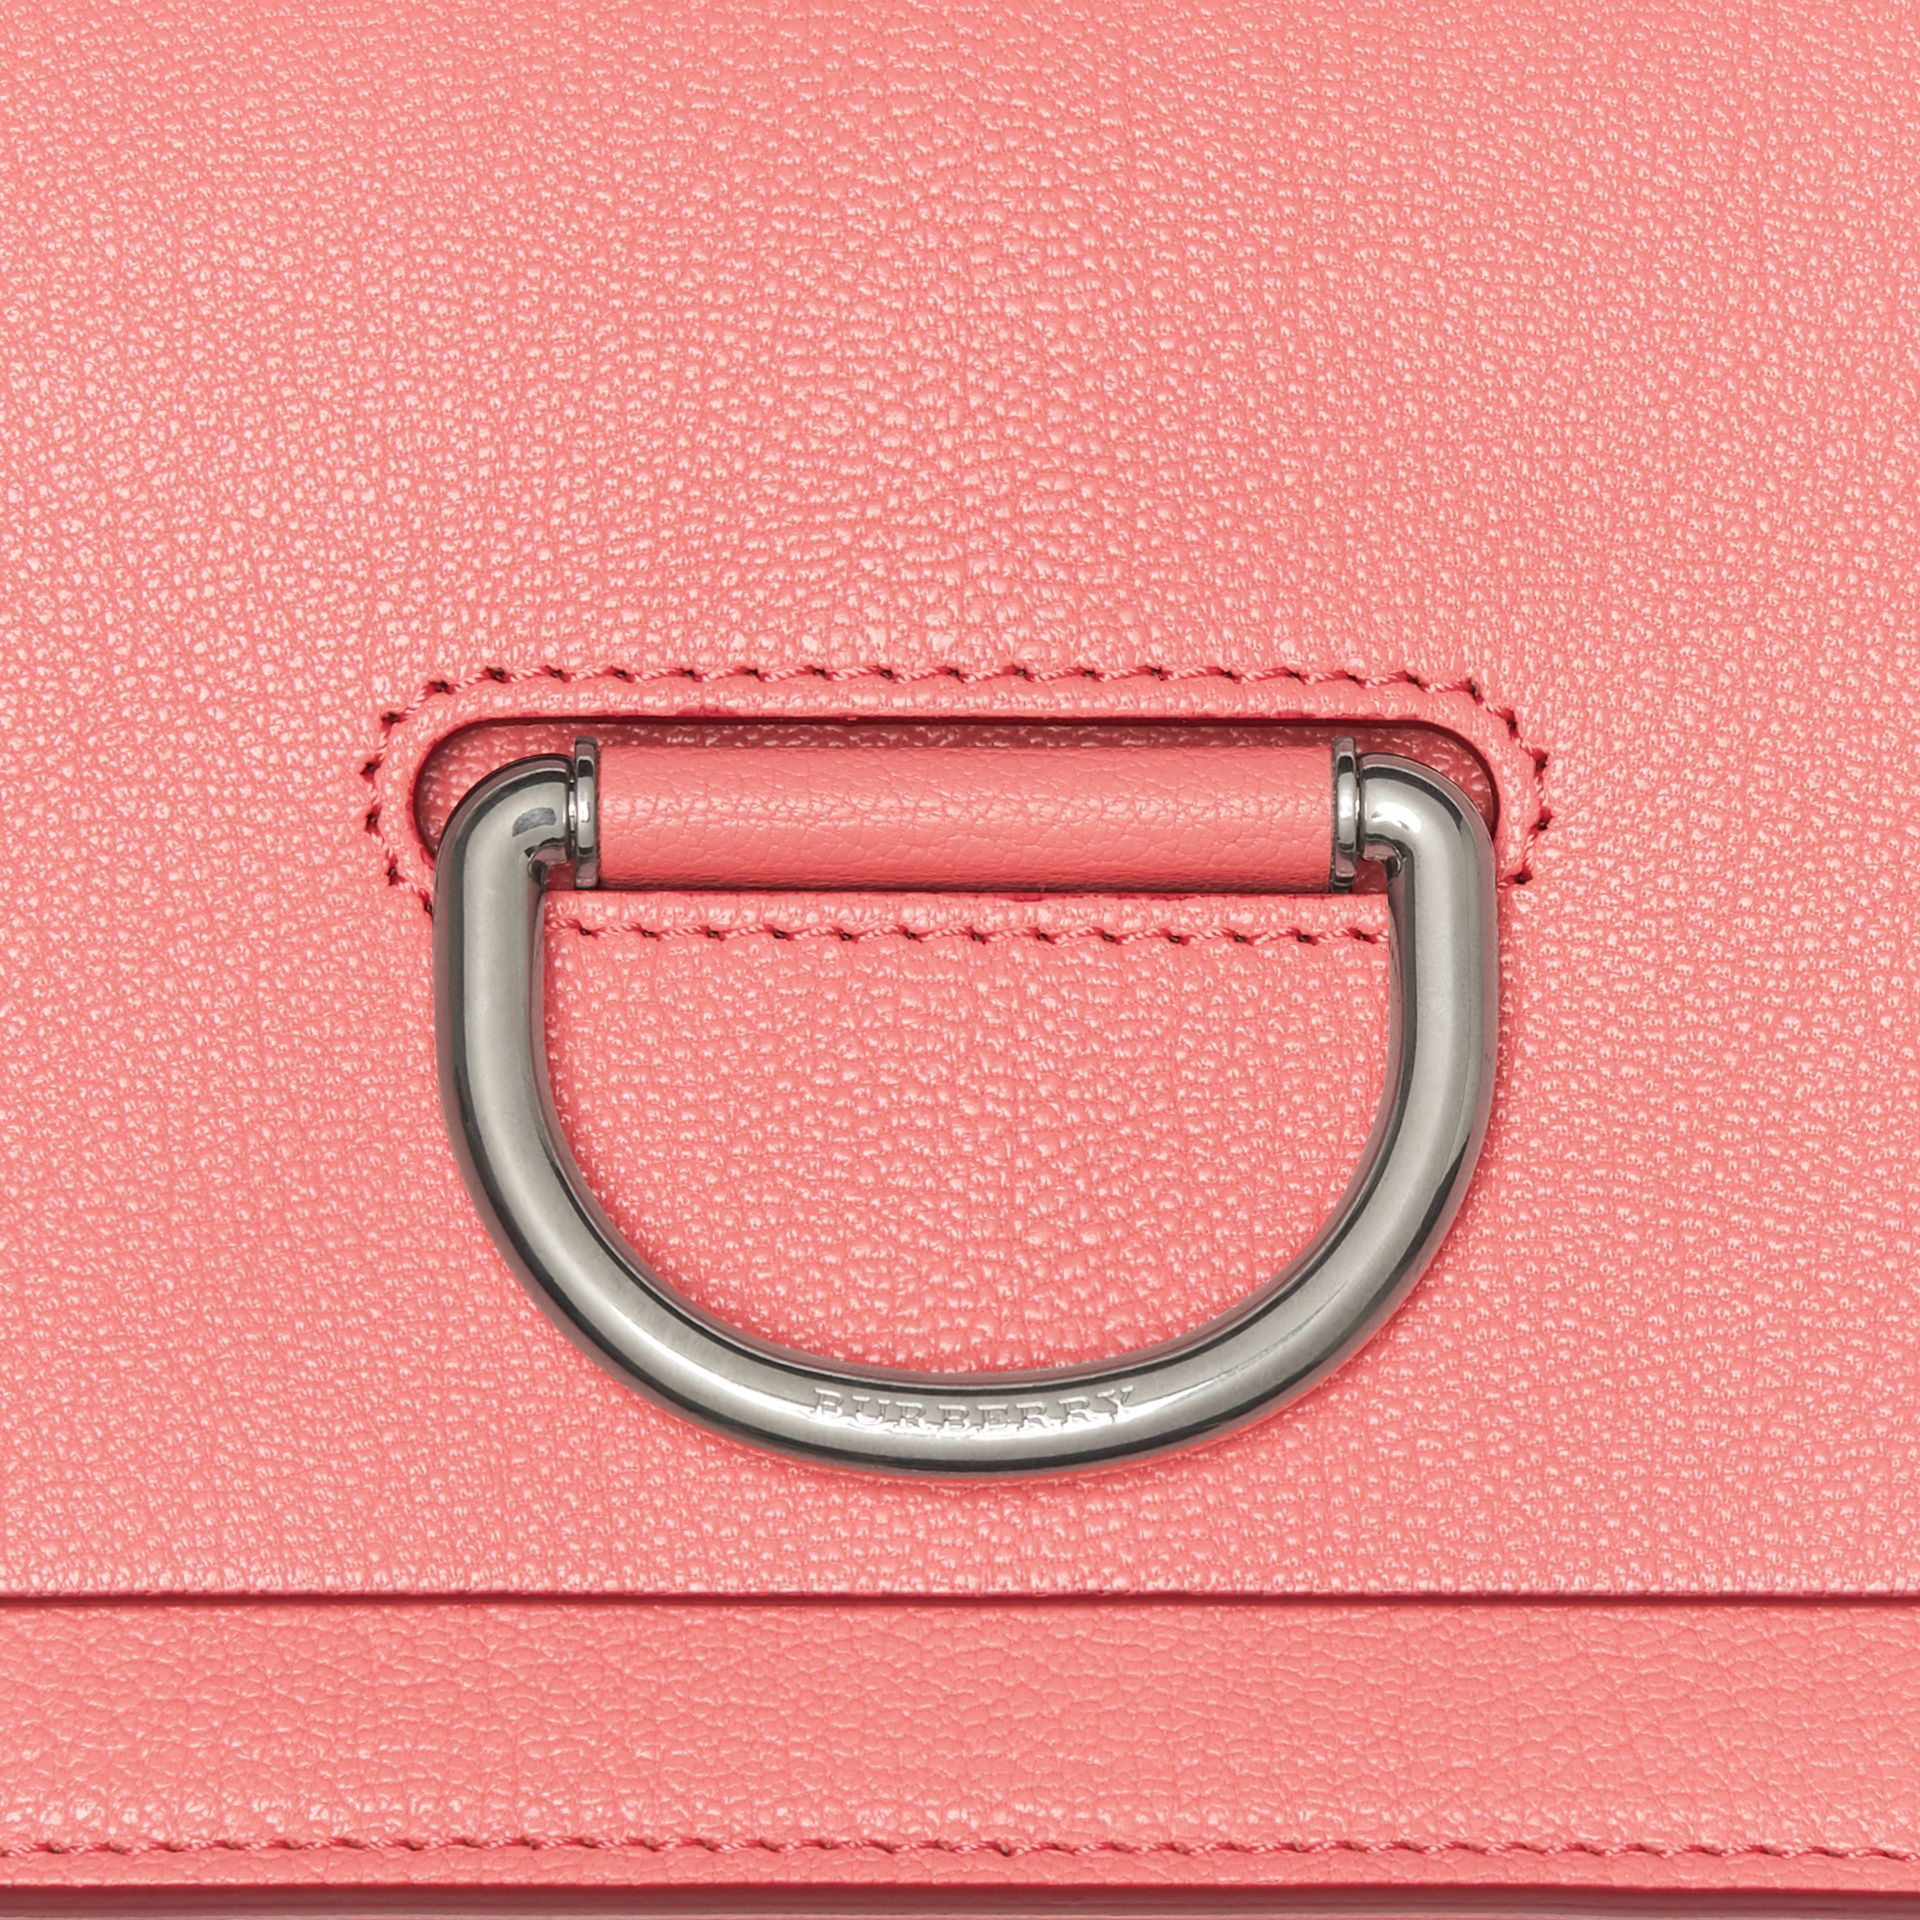 The Small Leather D-ring Bag in Bright Coral Pink - Women | Burberry - gallery image 1